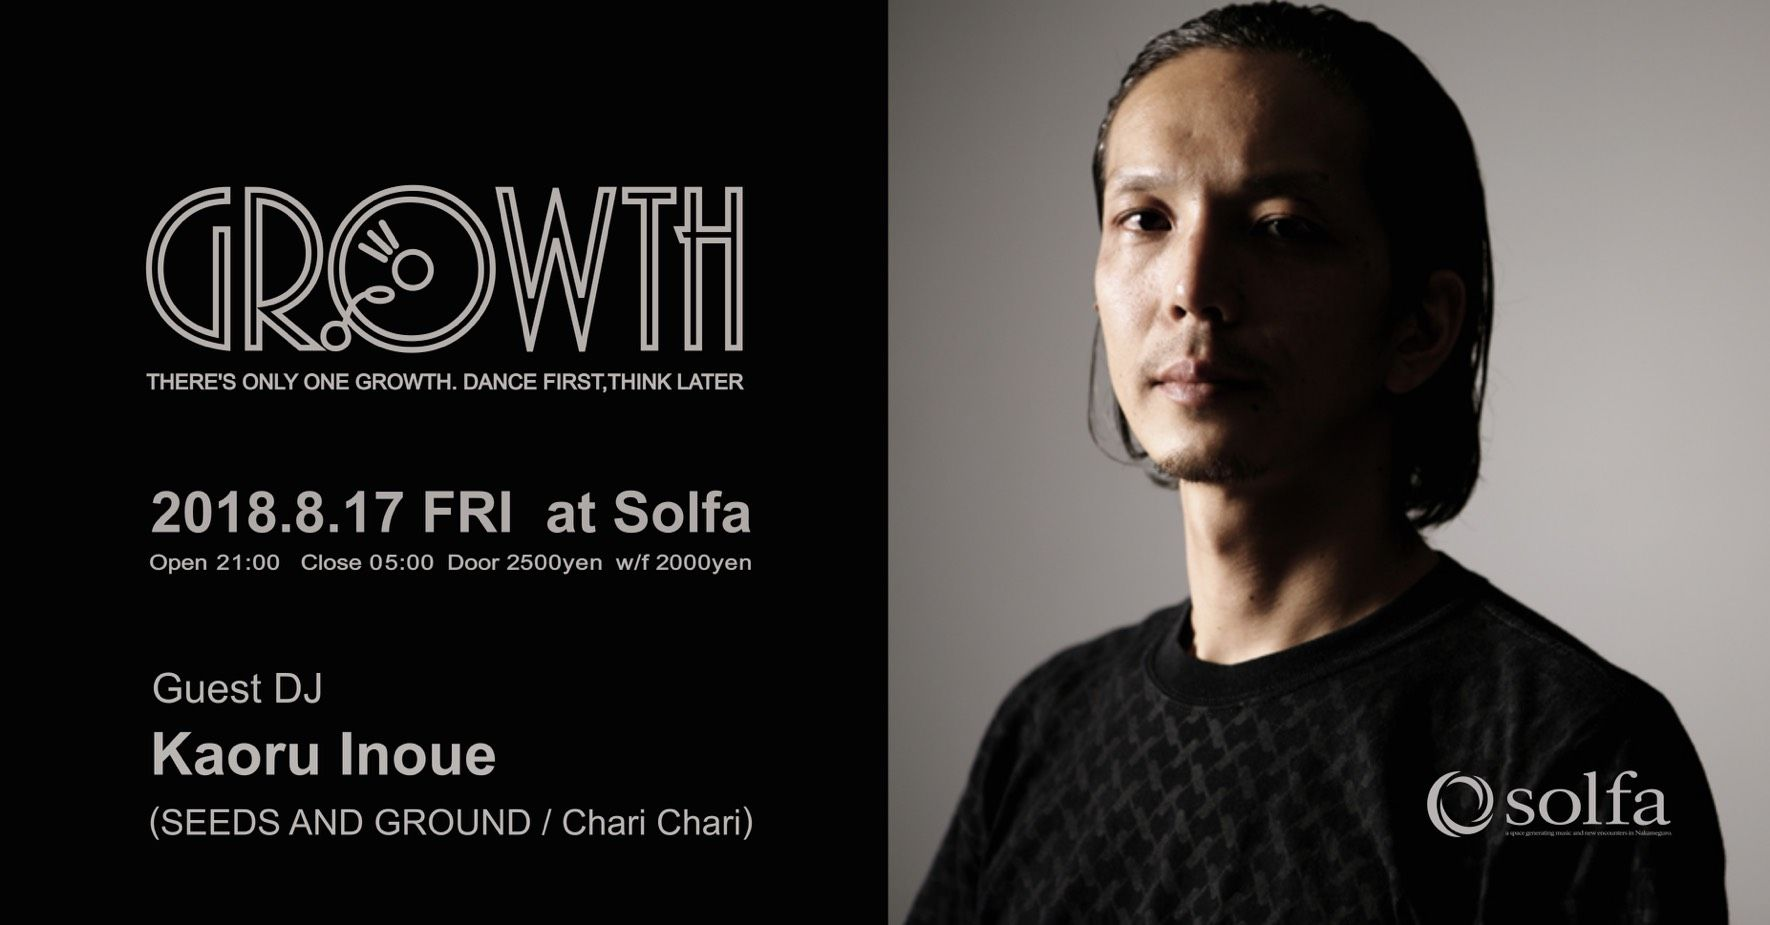 Growth feat. Kaoru Inoue (Seeds And Ground / Chari Chari)